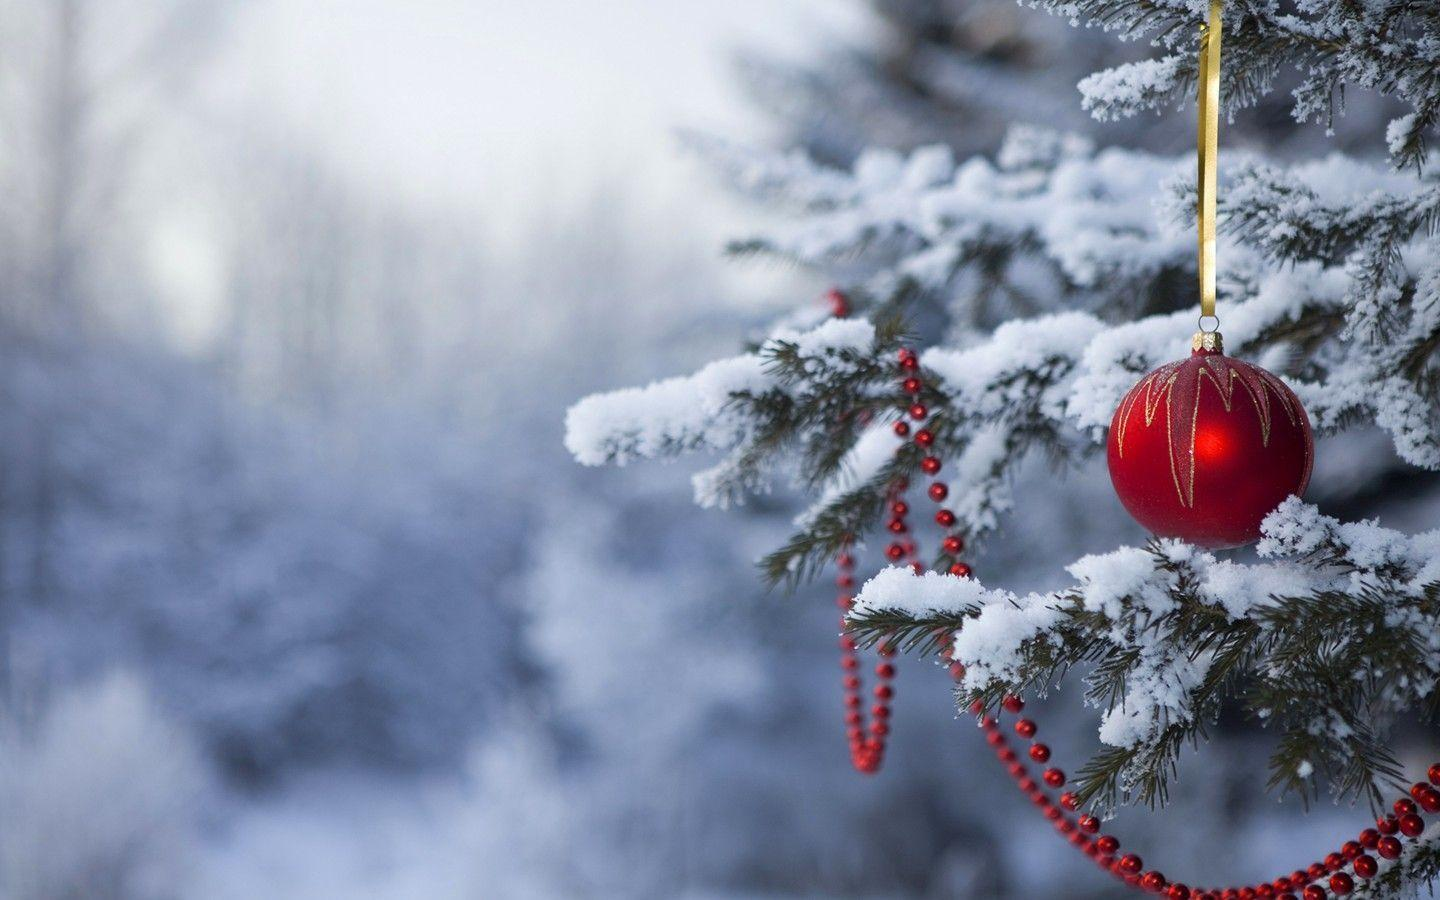 Colorful Christmas ornaments wallpaper 31093 - Christmas - Festival